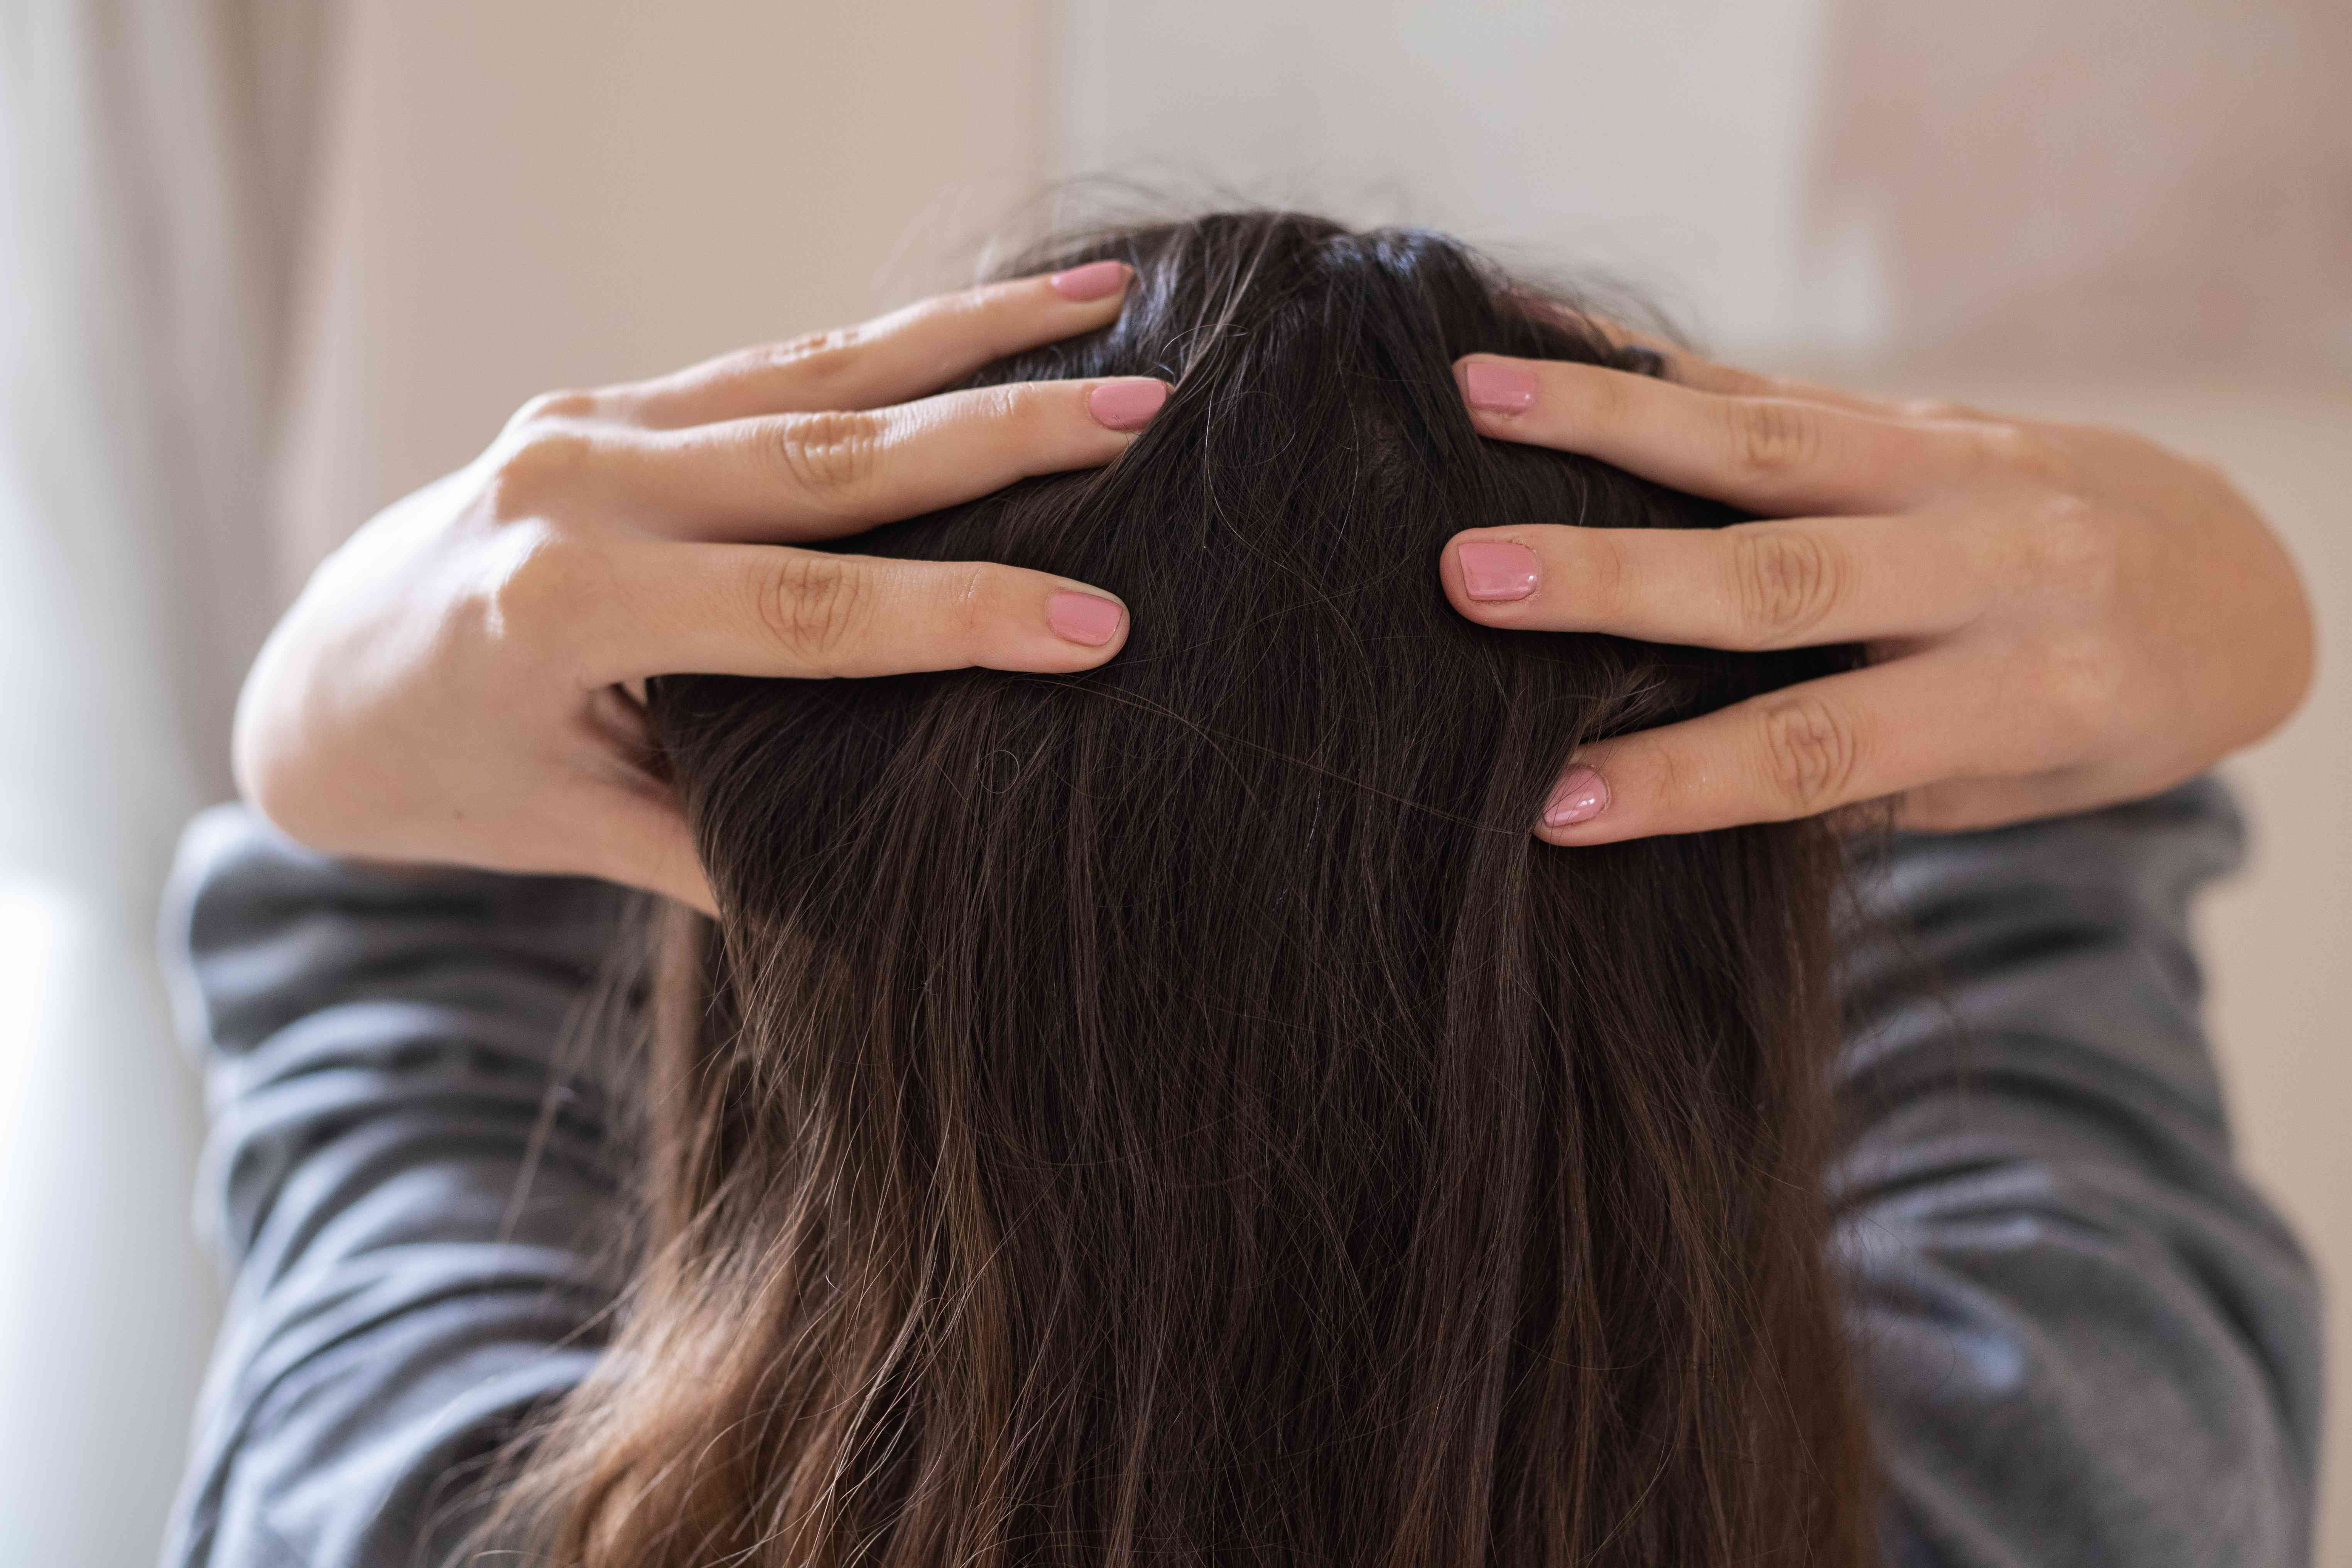 behind shot of woman with long brown hair giving herself scalp massage